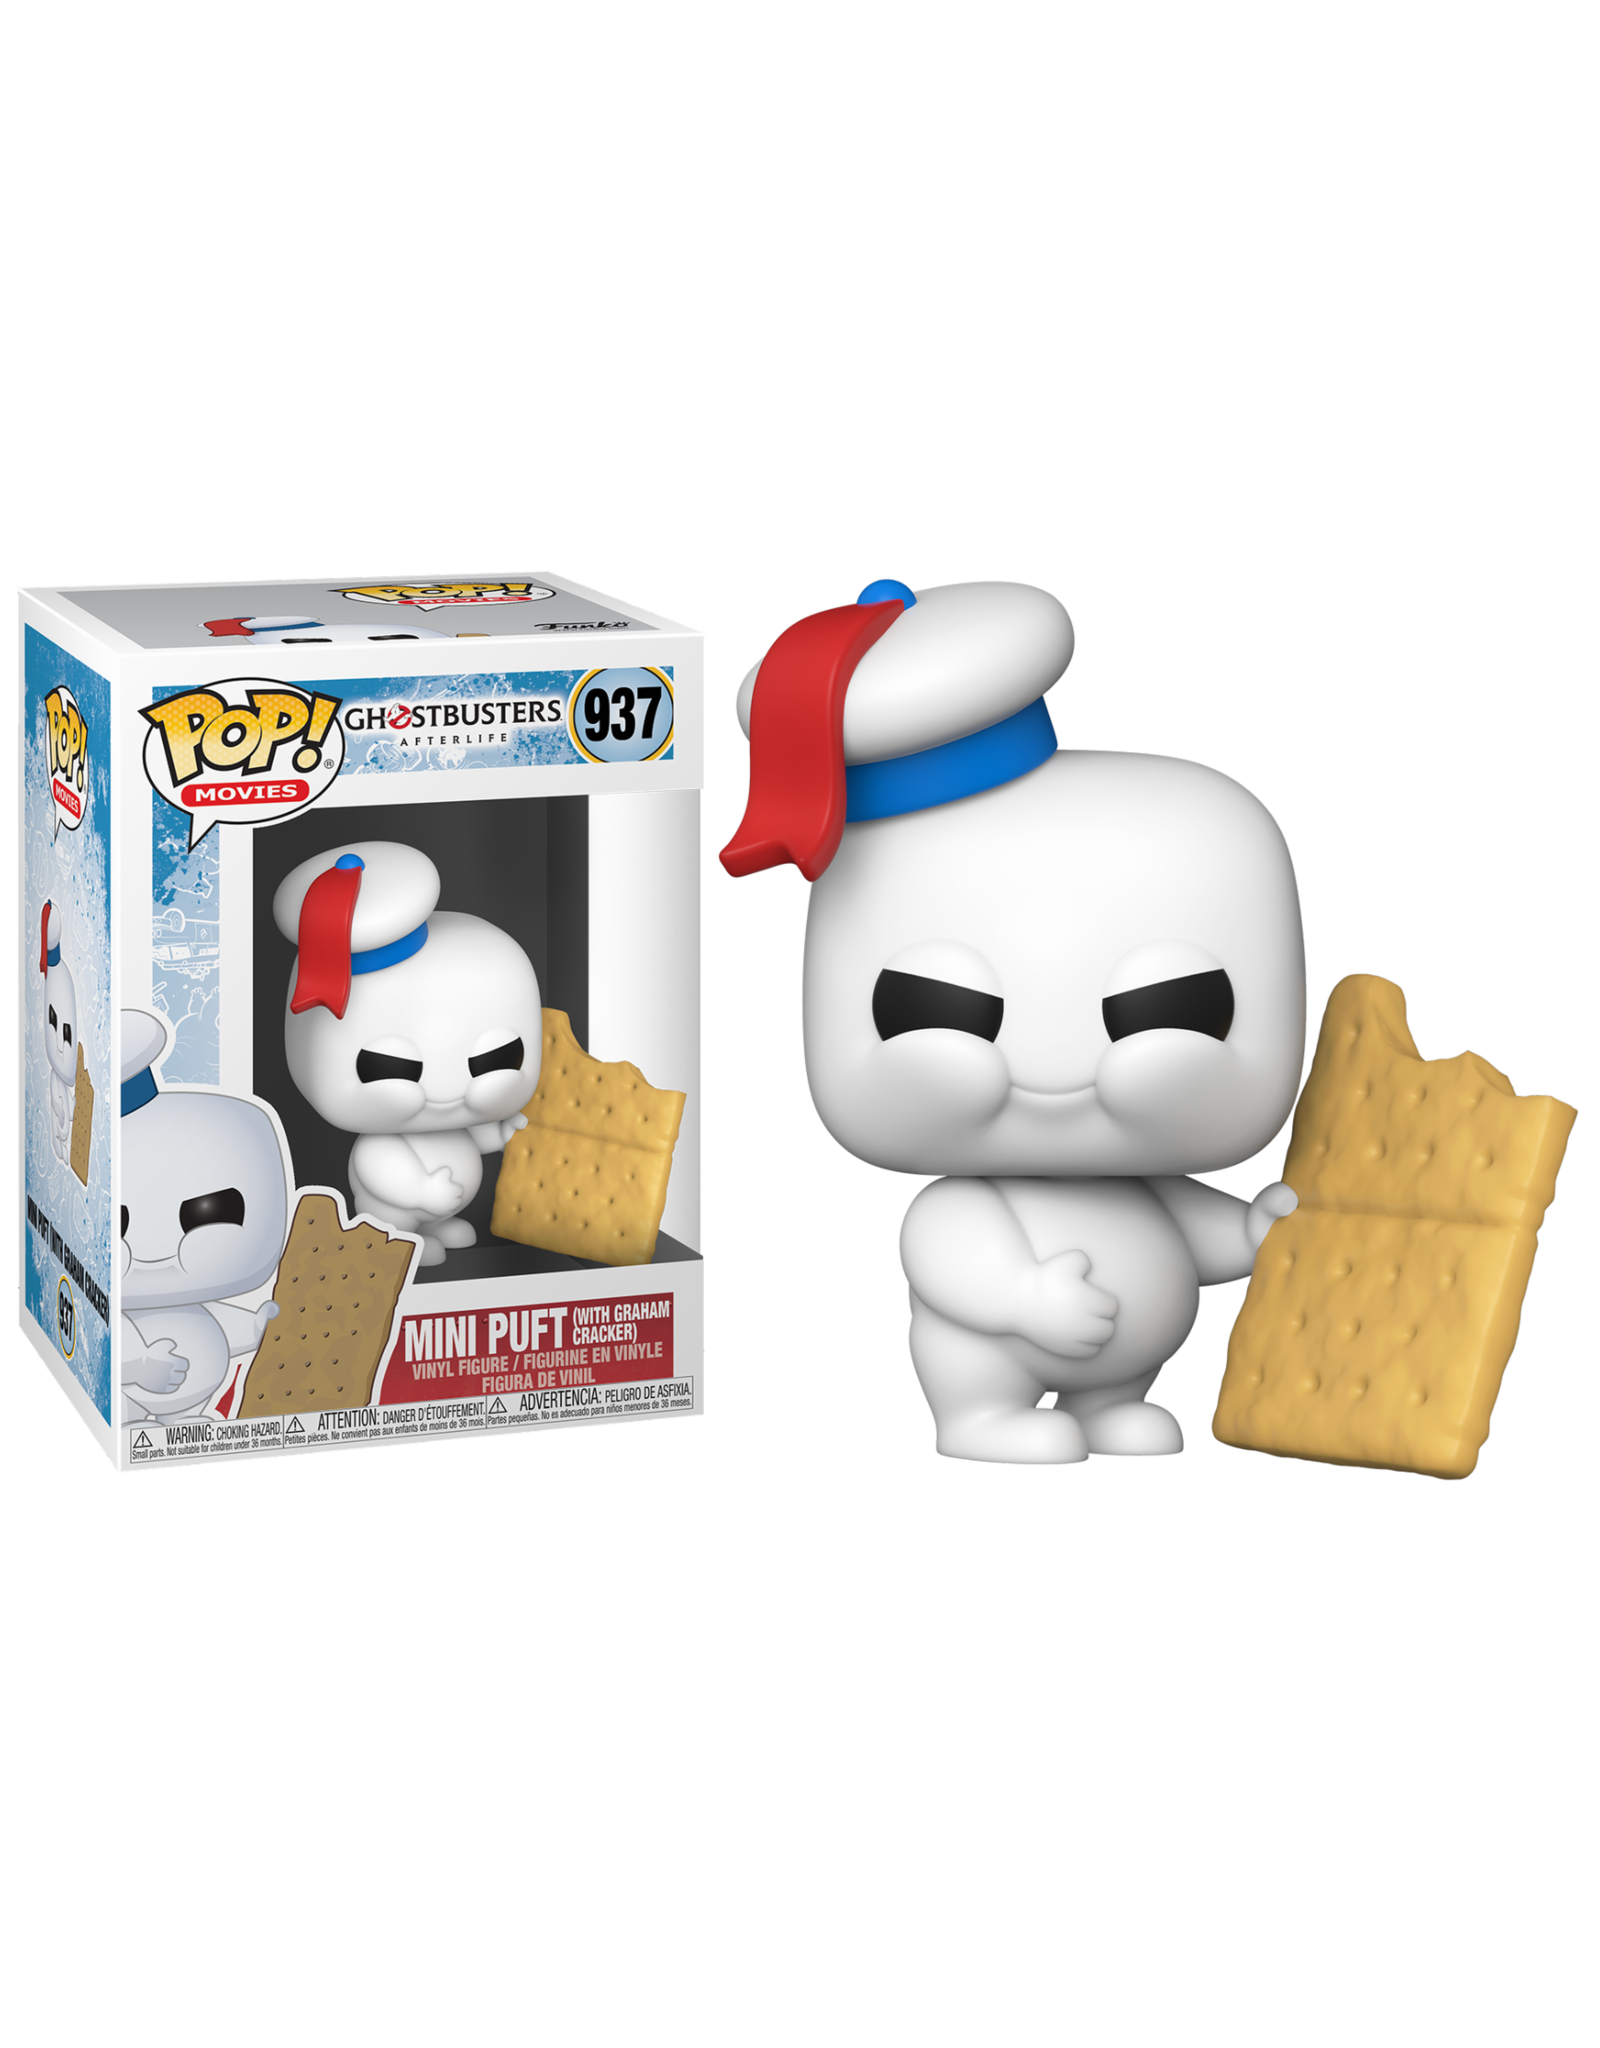 Funko GHOSTBUSTERS Afterlife POP! N° 937 -  Mini Puft with Graham Cracker